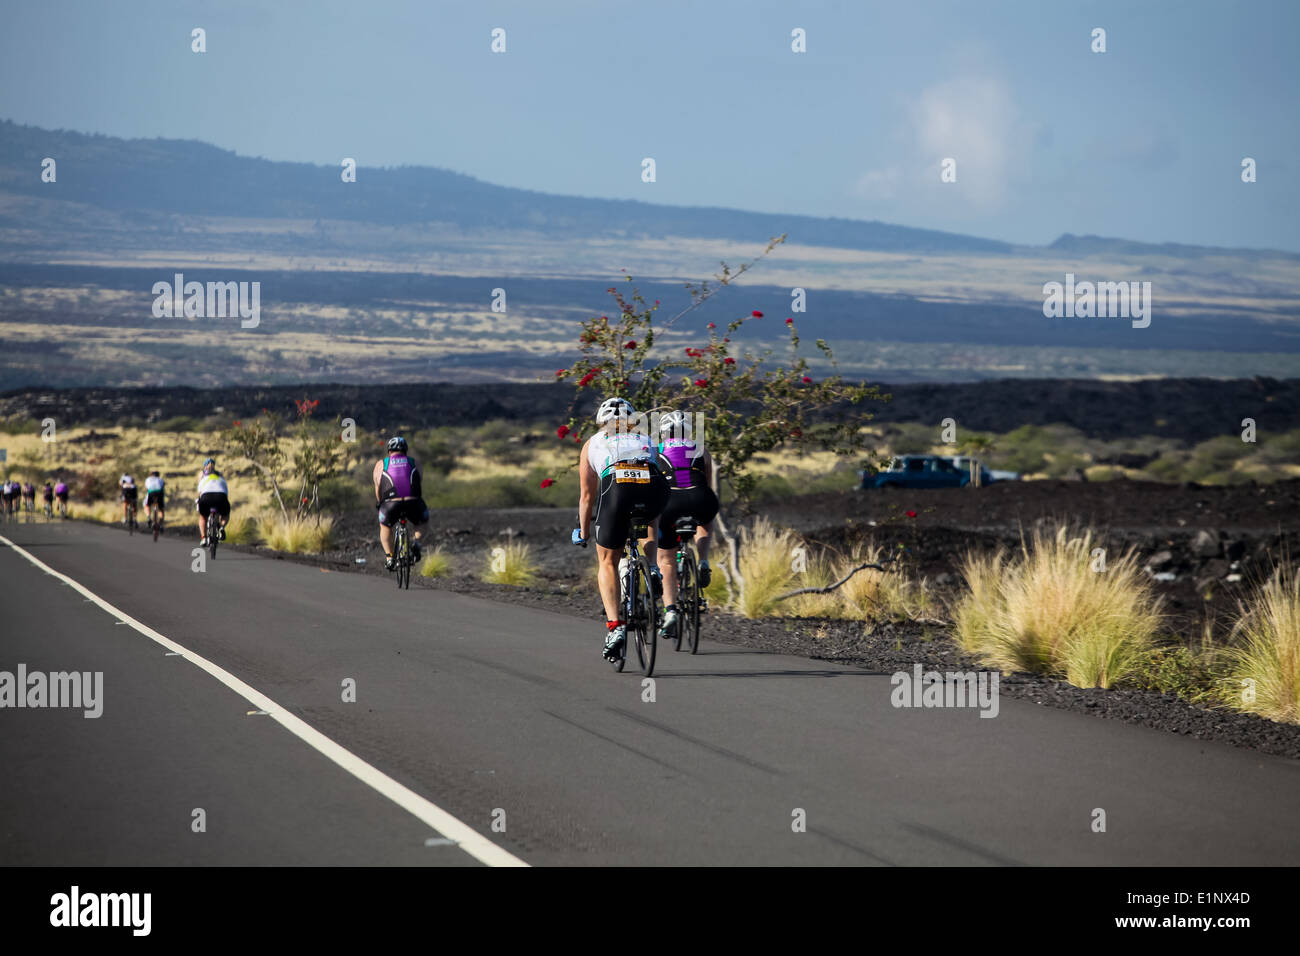 Unidentified cyclers on the Lavaman Triathlon in Waikoloa, Hawaii. It is held in Olympics format: 1.5 km swimming, 40 km biking and 10 km running. Stock Photo